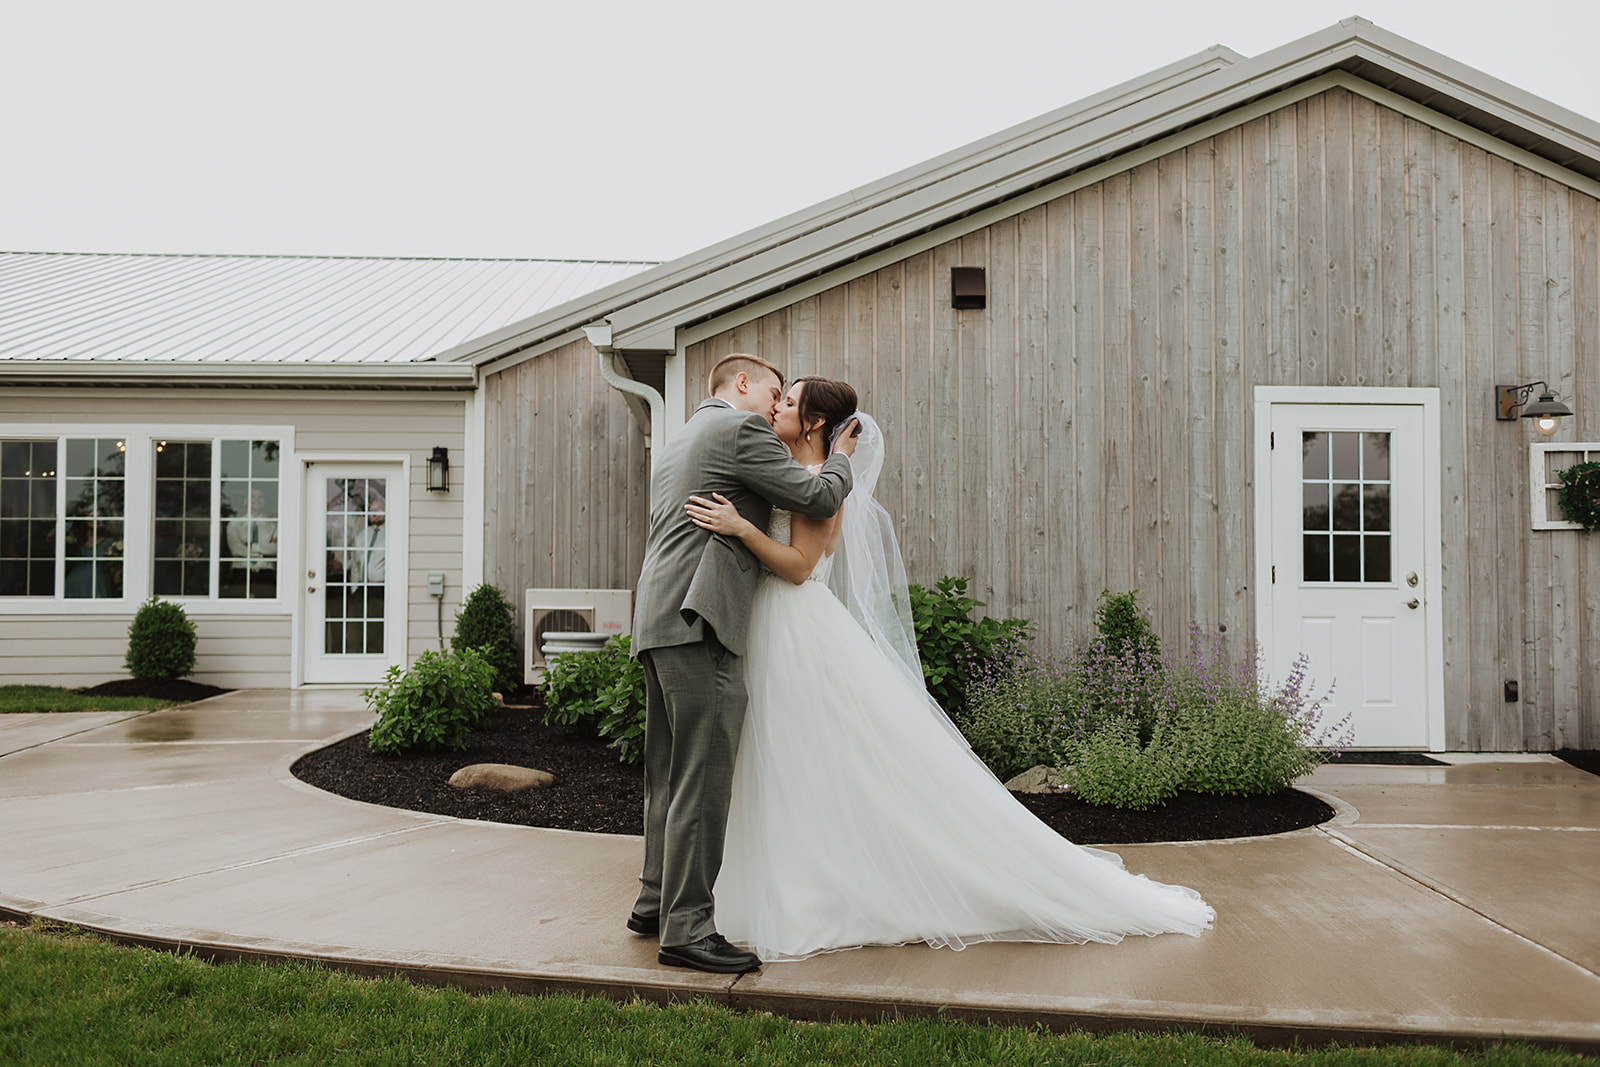 Kendra_and_Mattew_Indiana_Wedding_by_Emily_Wehner-206.jpg